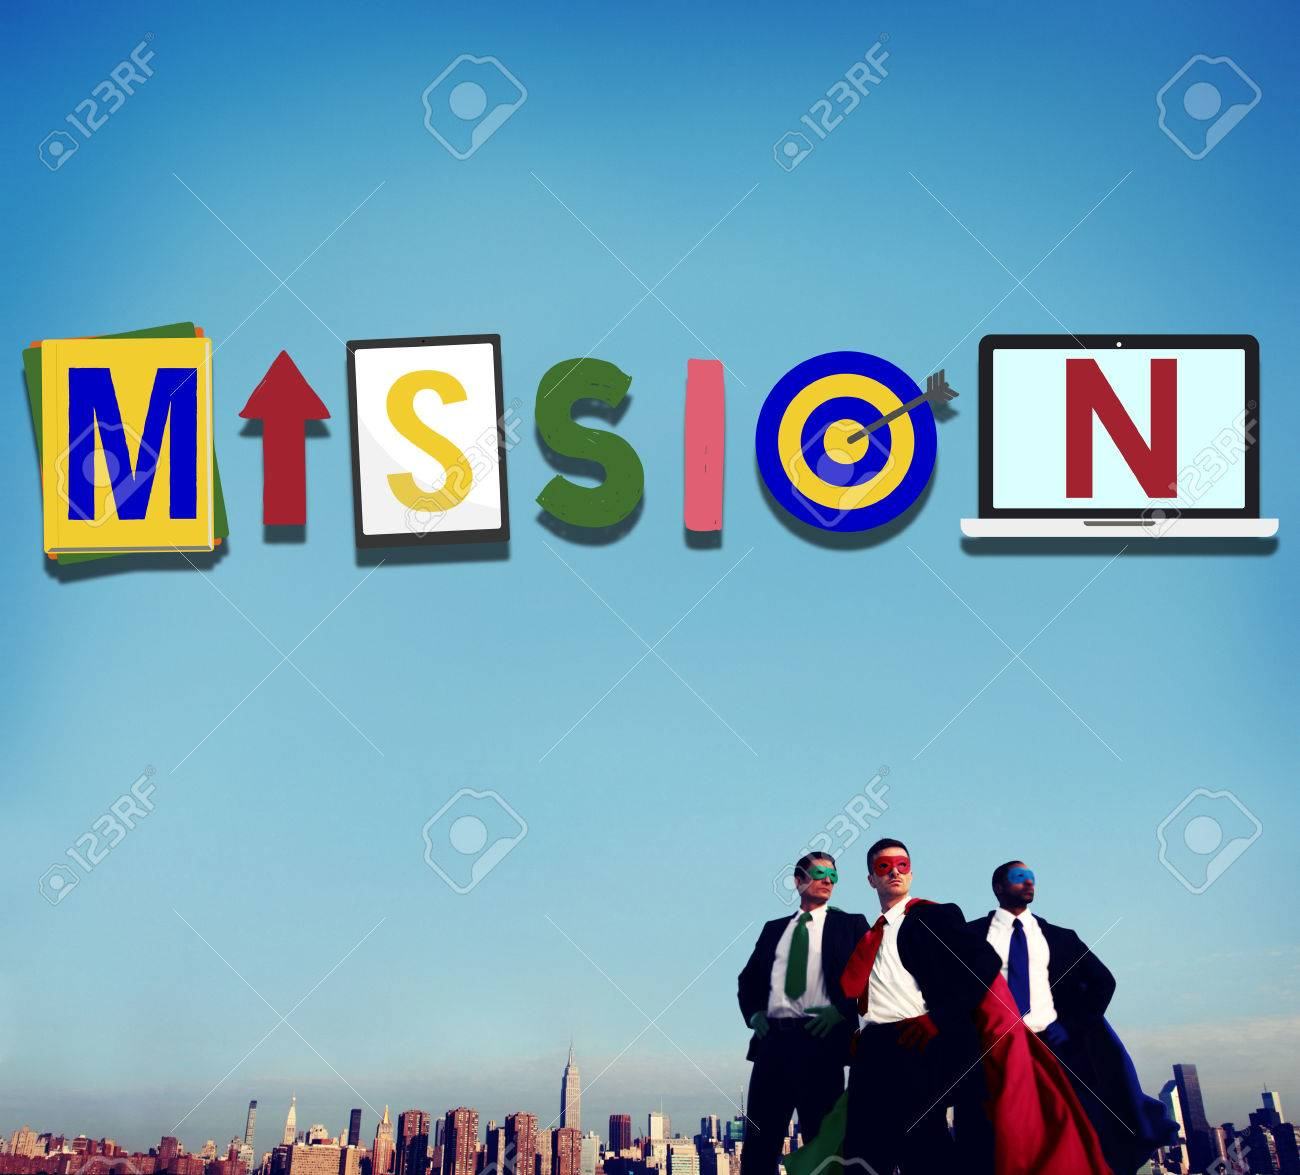 mission objective plan strategy target goals aspirations concept mission objective plan strategy target goals aspirations concept stock photo 54641120